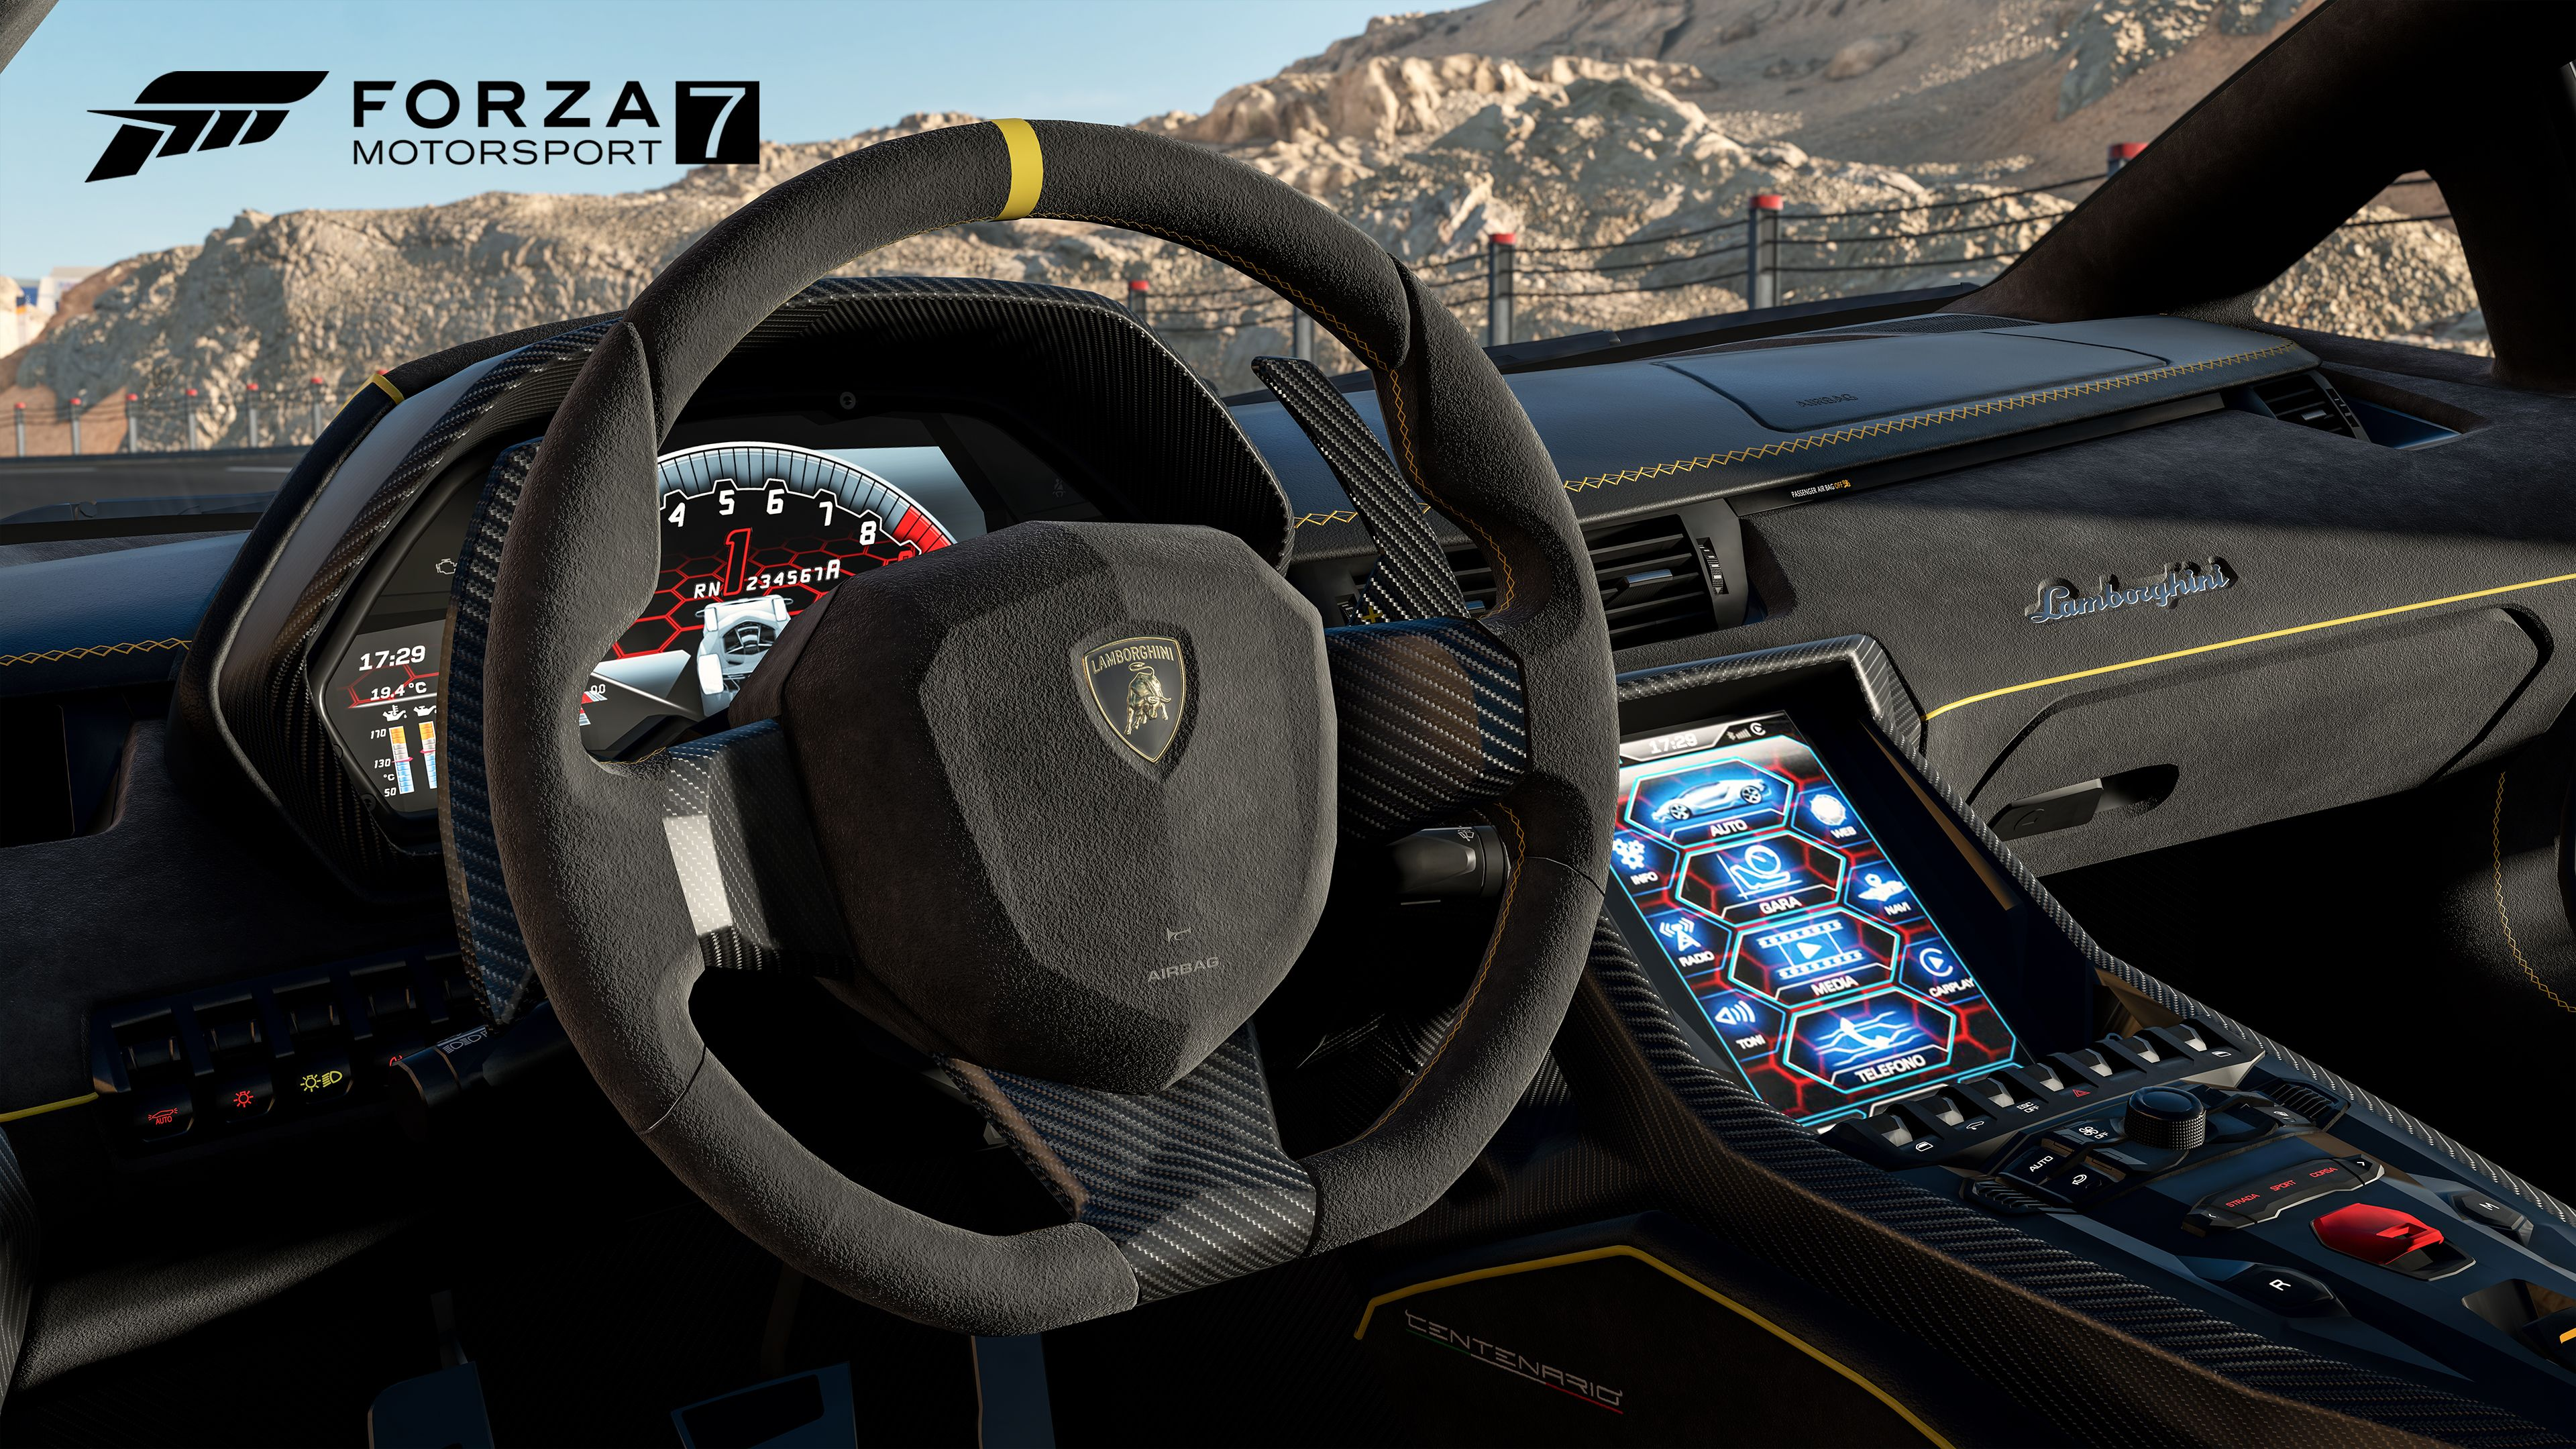 forza 7 pc specs requirements to run it at 720p 30fps 1080p 60fps and 4k 60fps. Black Bedroom Furniture Sets. Home Design Ideas